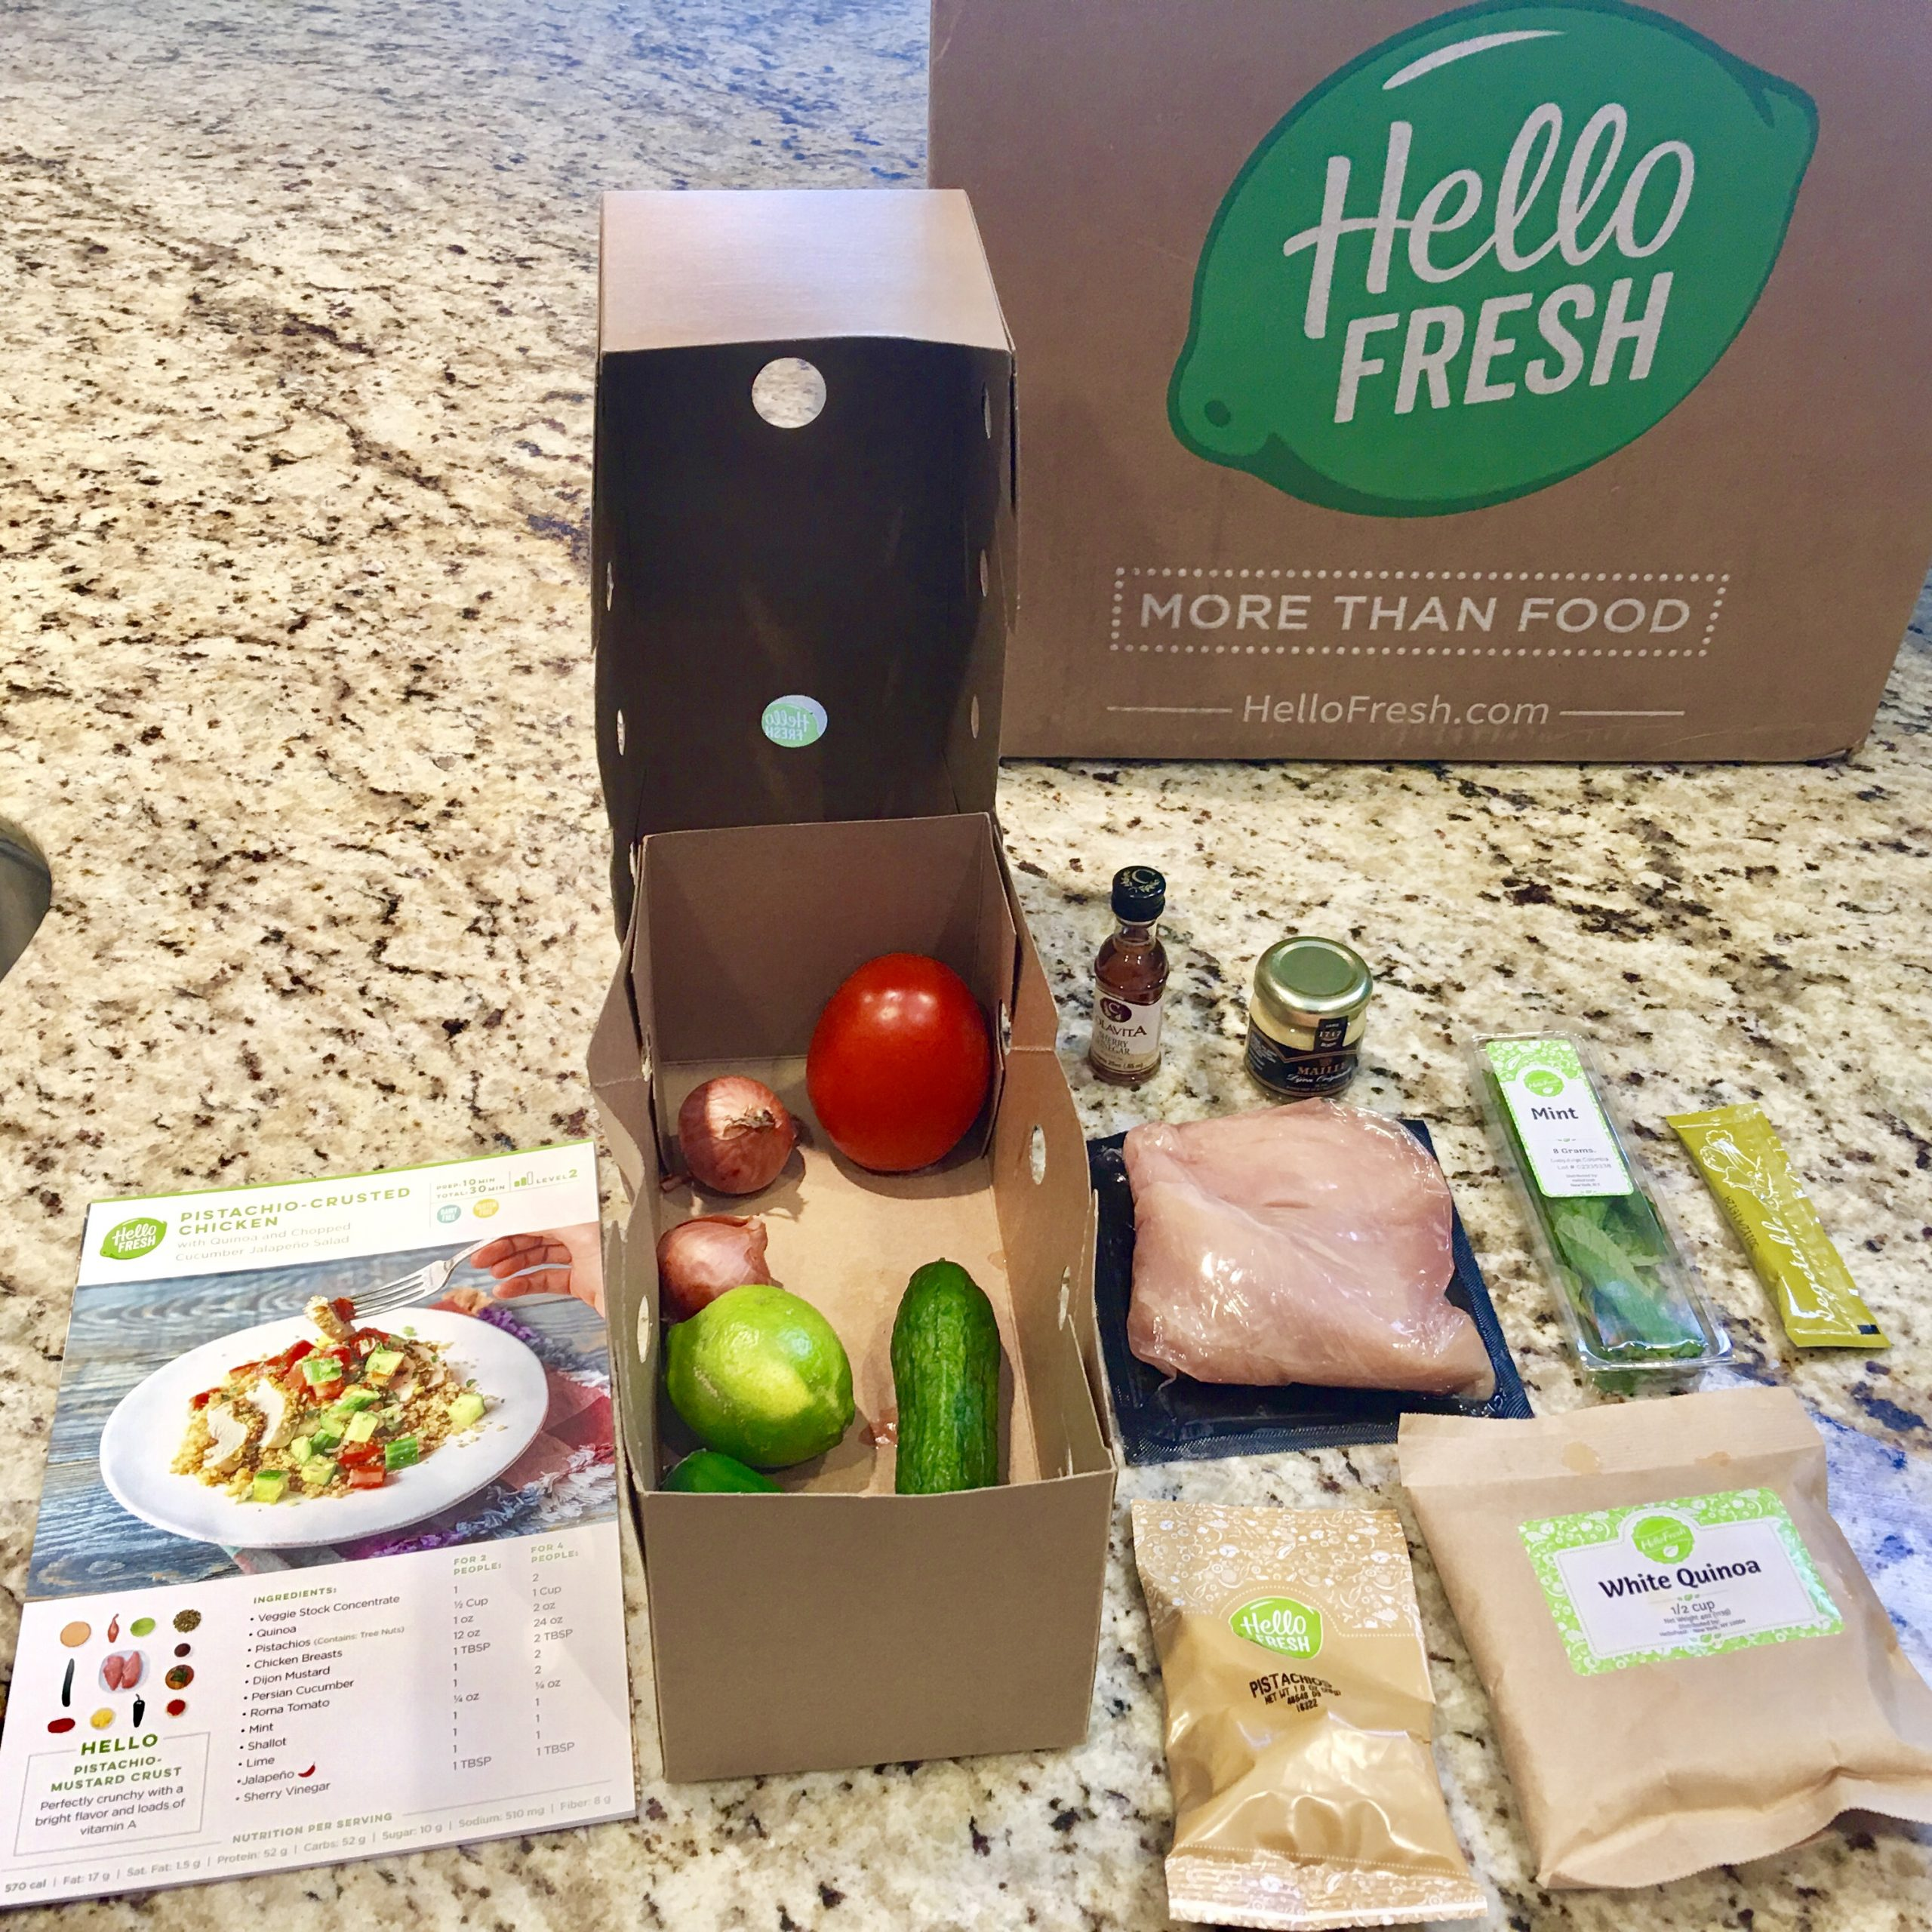 Meal Kit Delivery Service Hellofresh Outlet Coupon Reddit April 2020